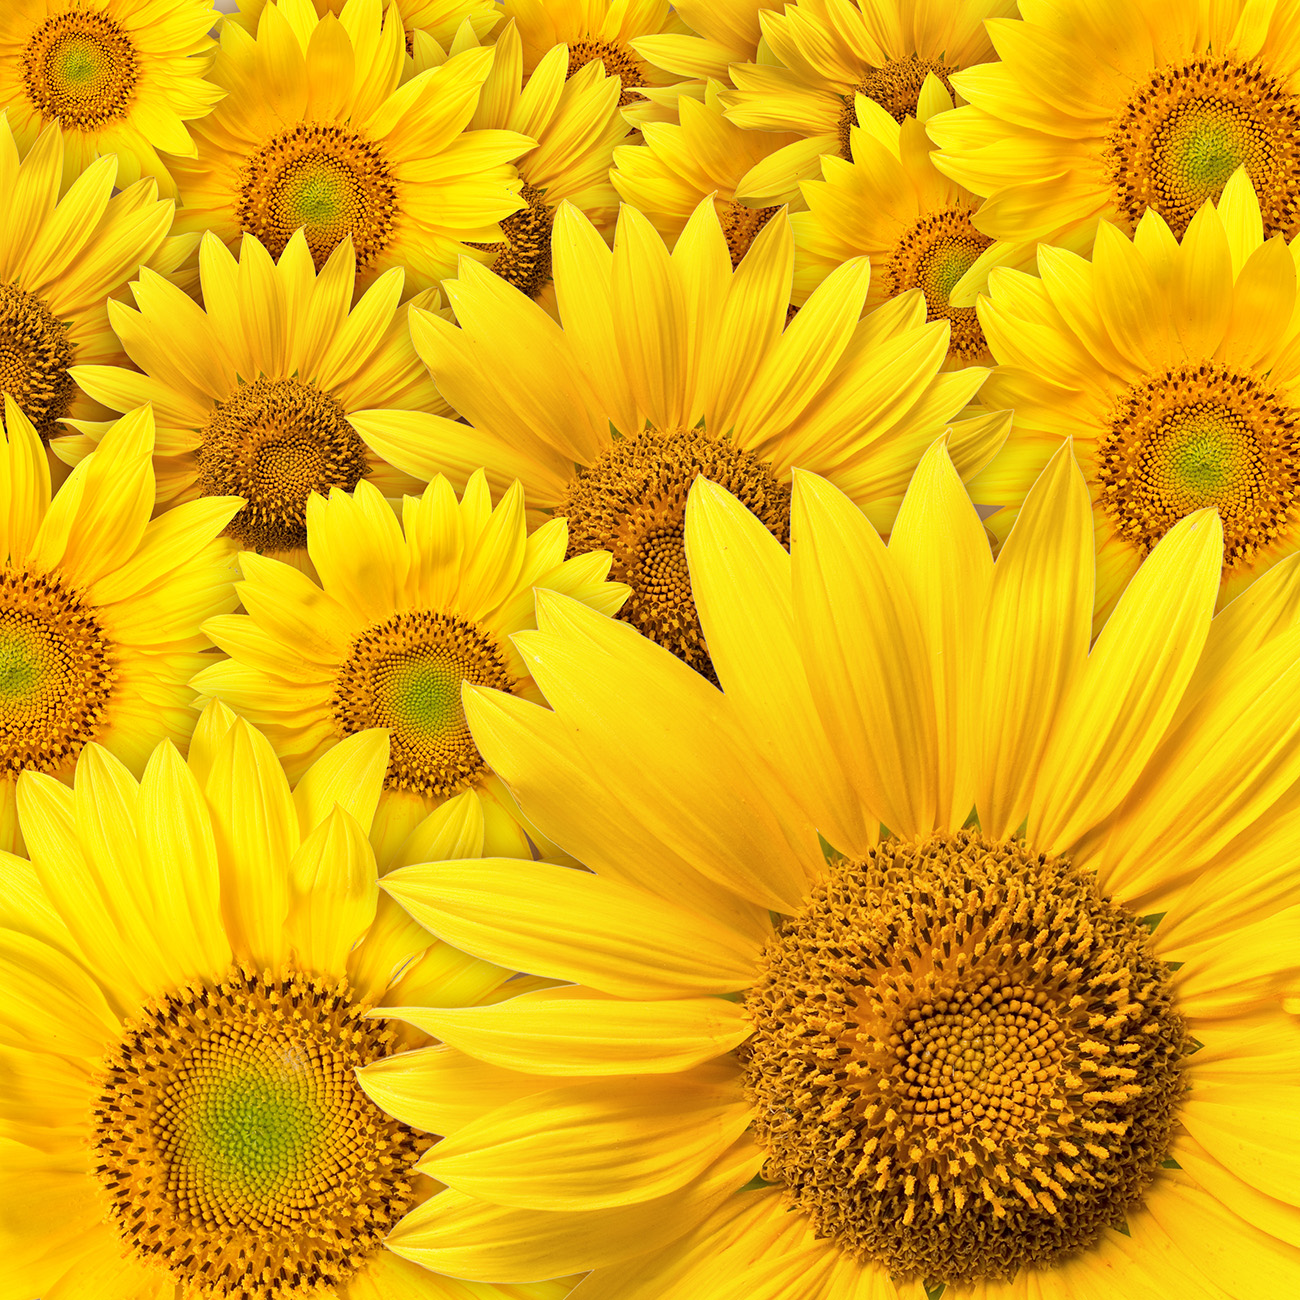 Sunflower 50468